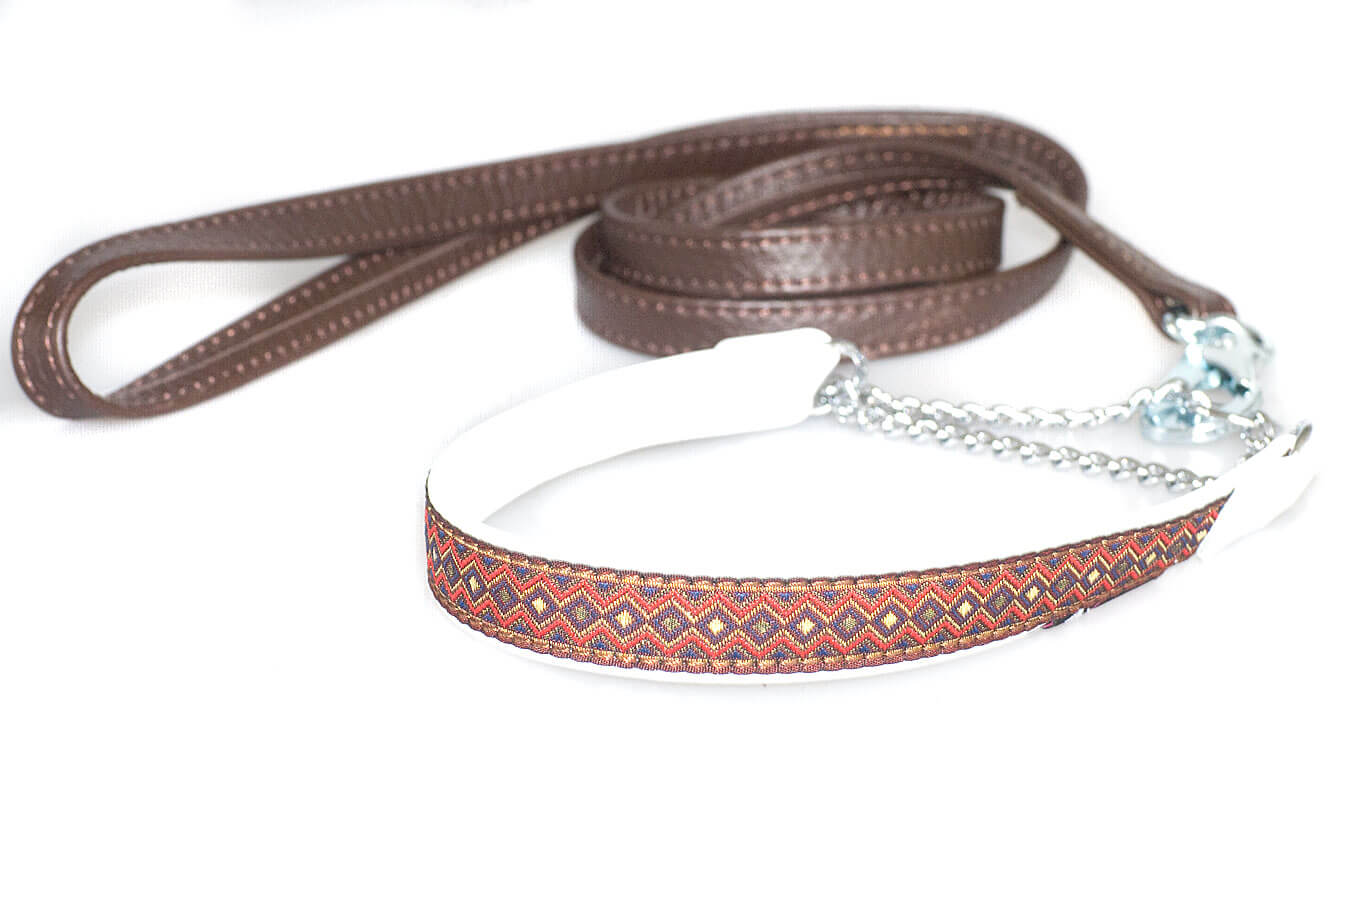 Brown nappa leather dog show set with martingale ribbon collar